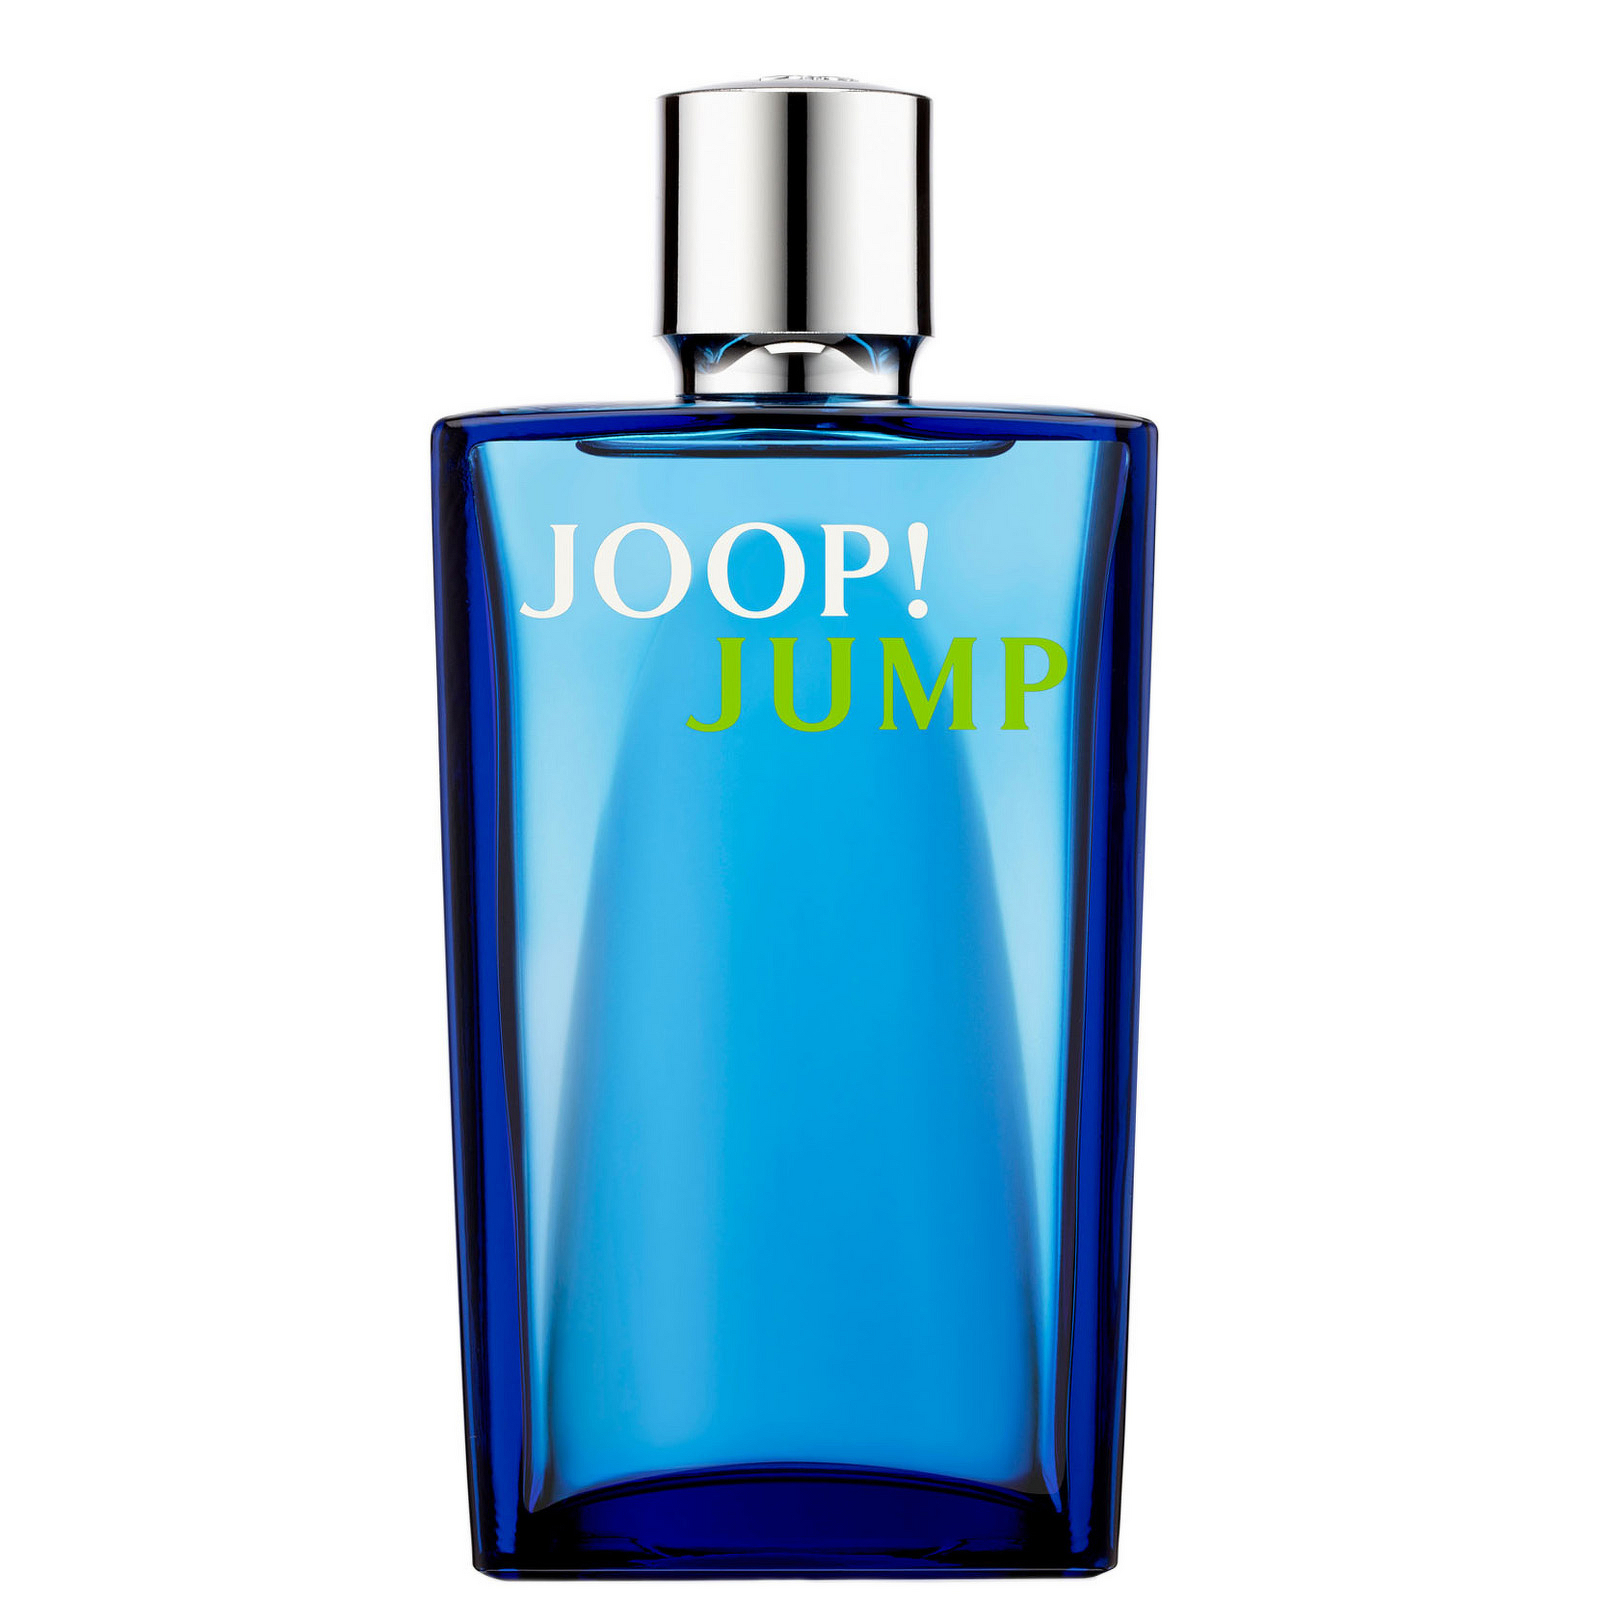 joop jump eau de toilette spray 100ml aftershave. Black Bedroom Furniture Sets. Home Design Ideas